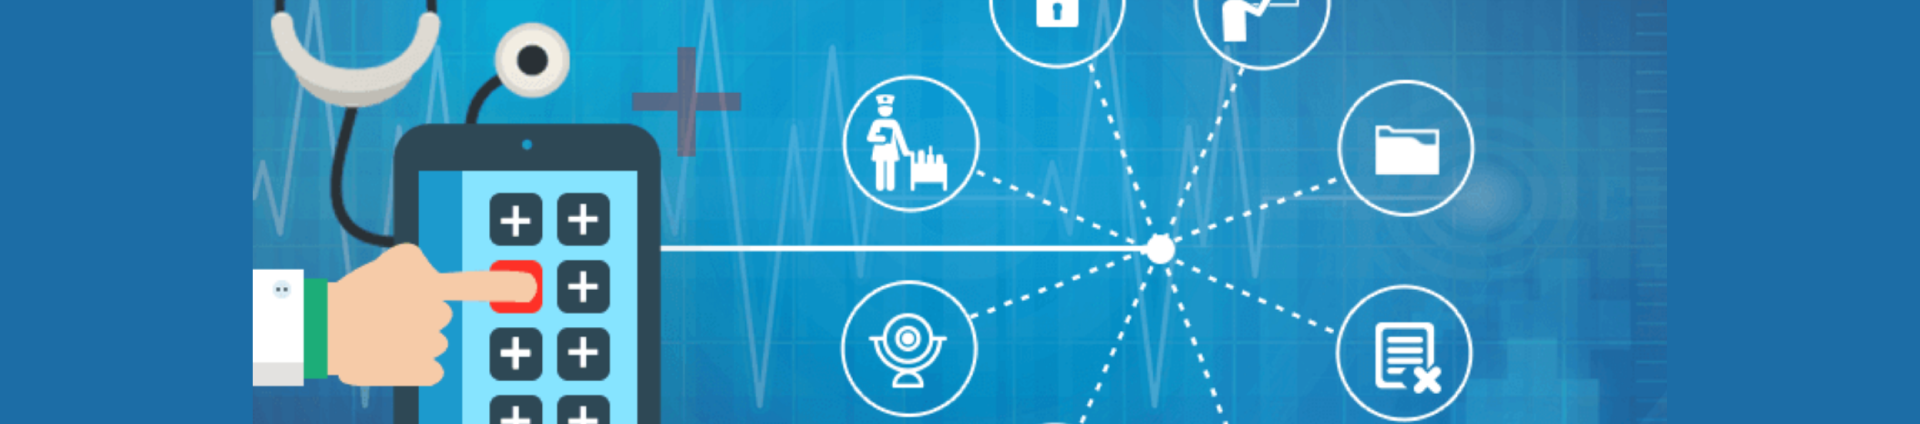 Mobile App Technologies in Healthcare System